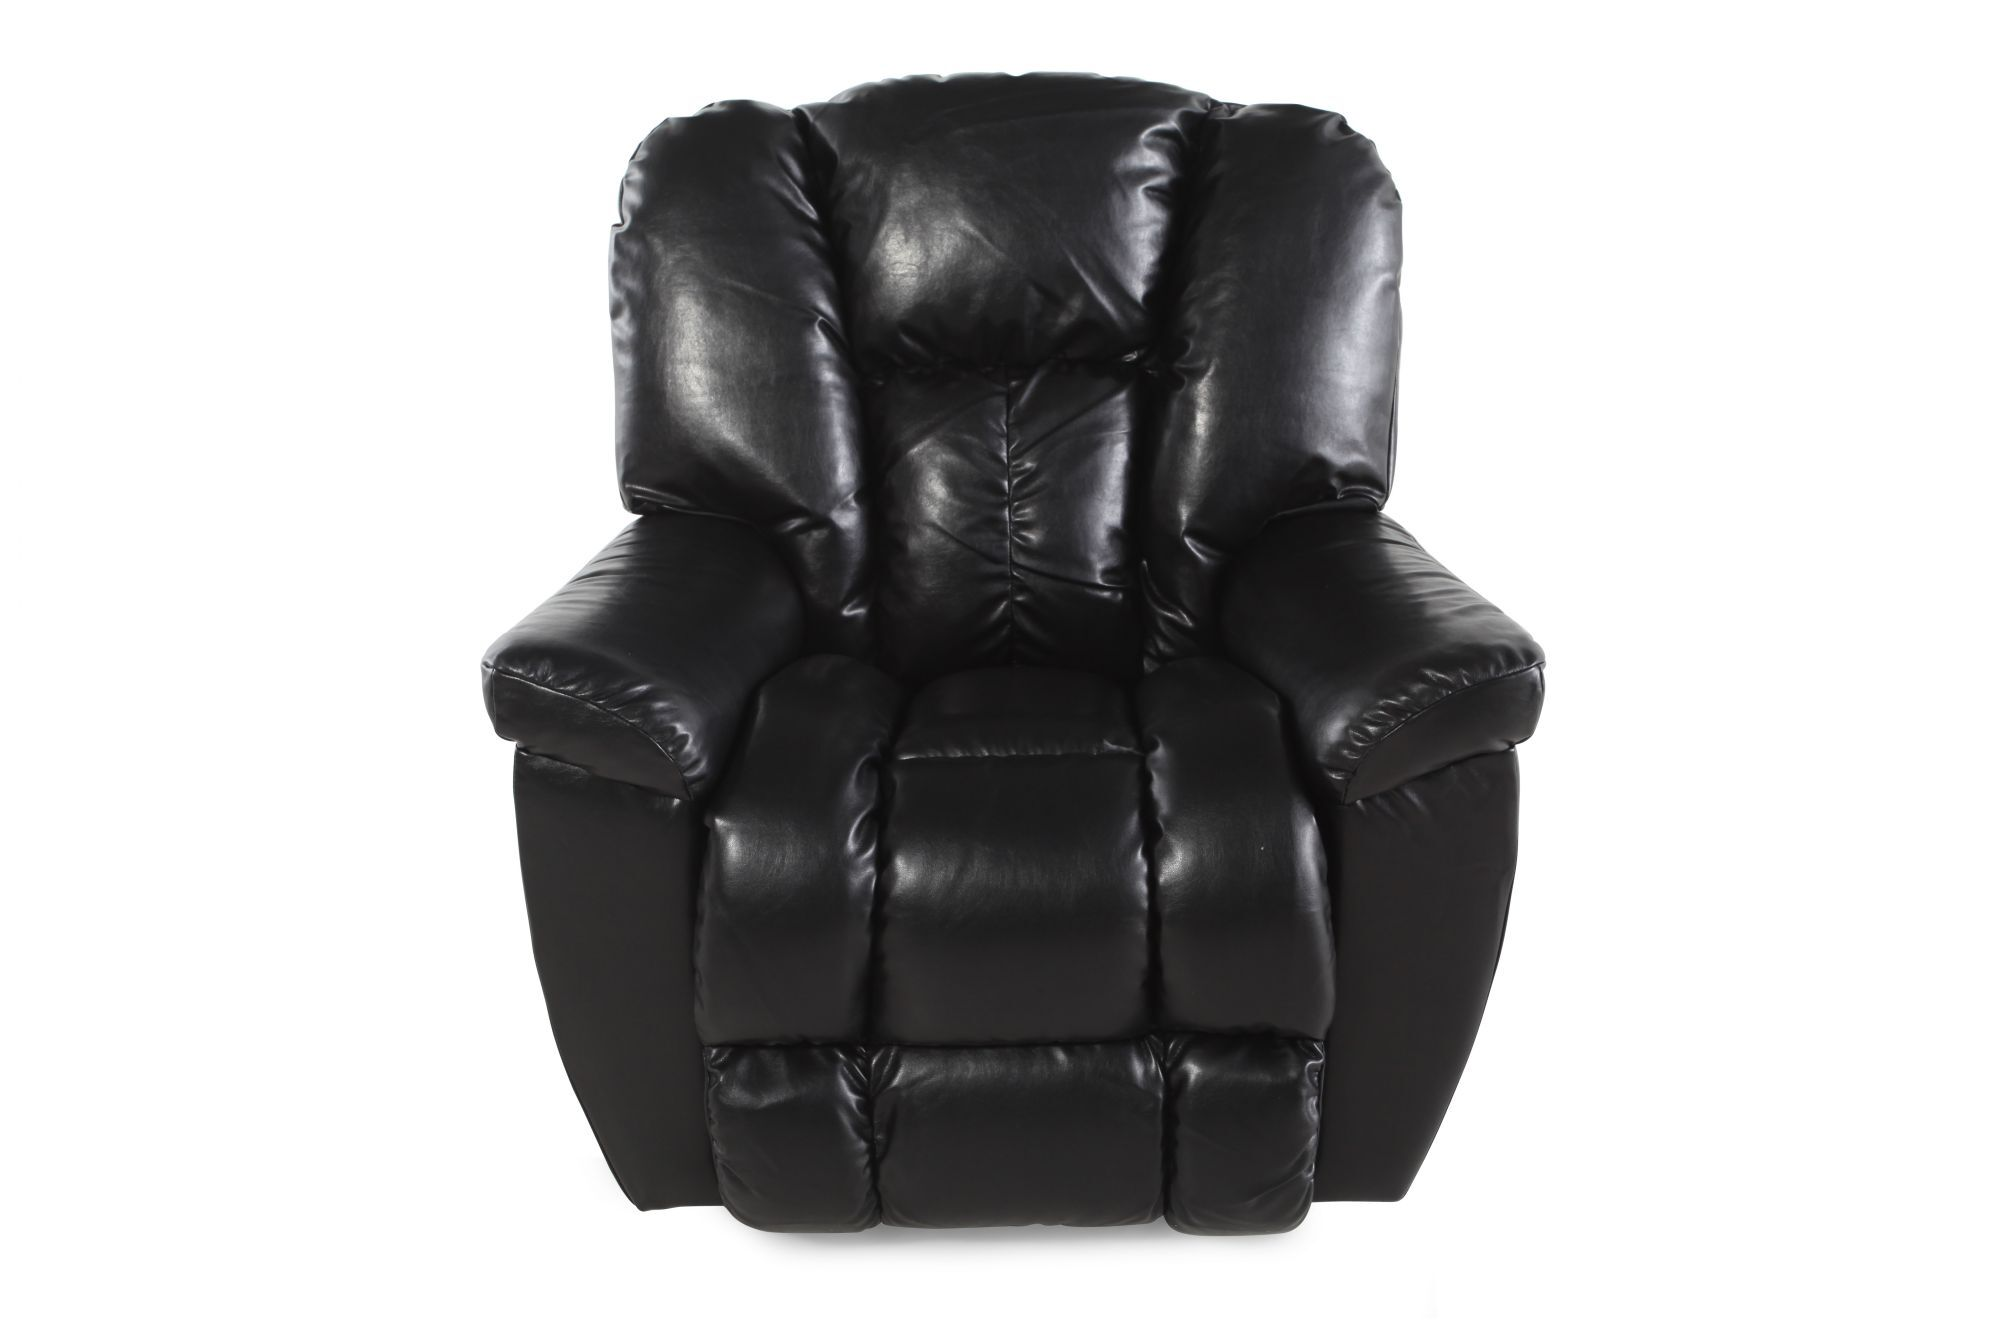 La-Z-Boy Maverick Black Renew Leather Recliner  sc 1 st  Mathis Brothers & La-Z-Boy Maverick Black Renew Leather Recliner | Mathis Brothers ... islam-shia.org